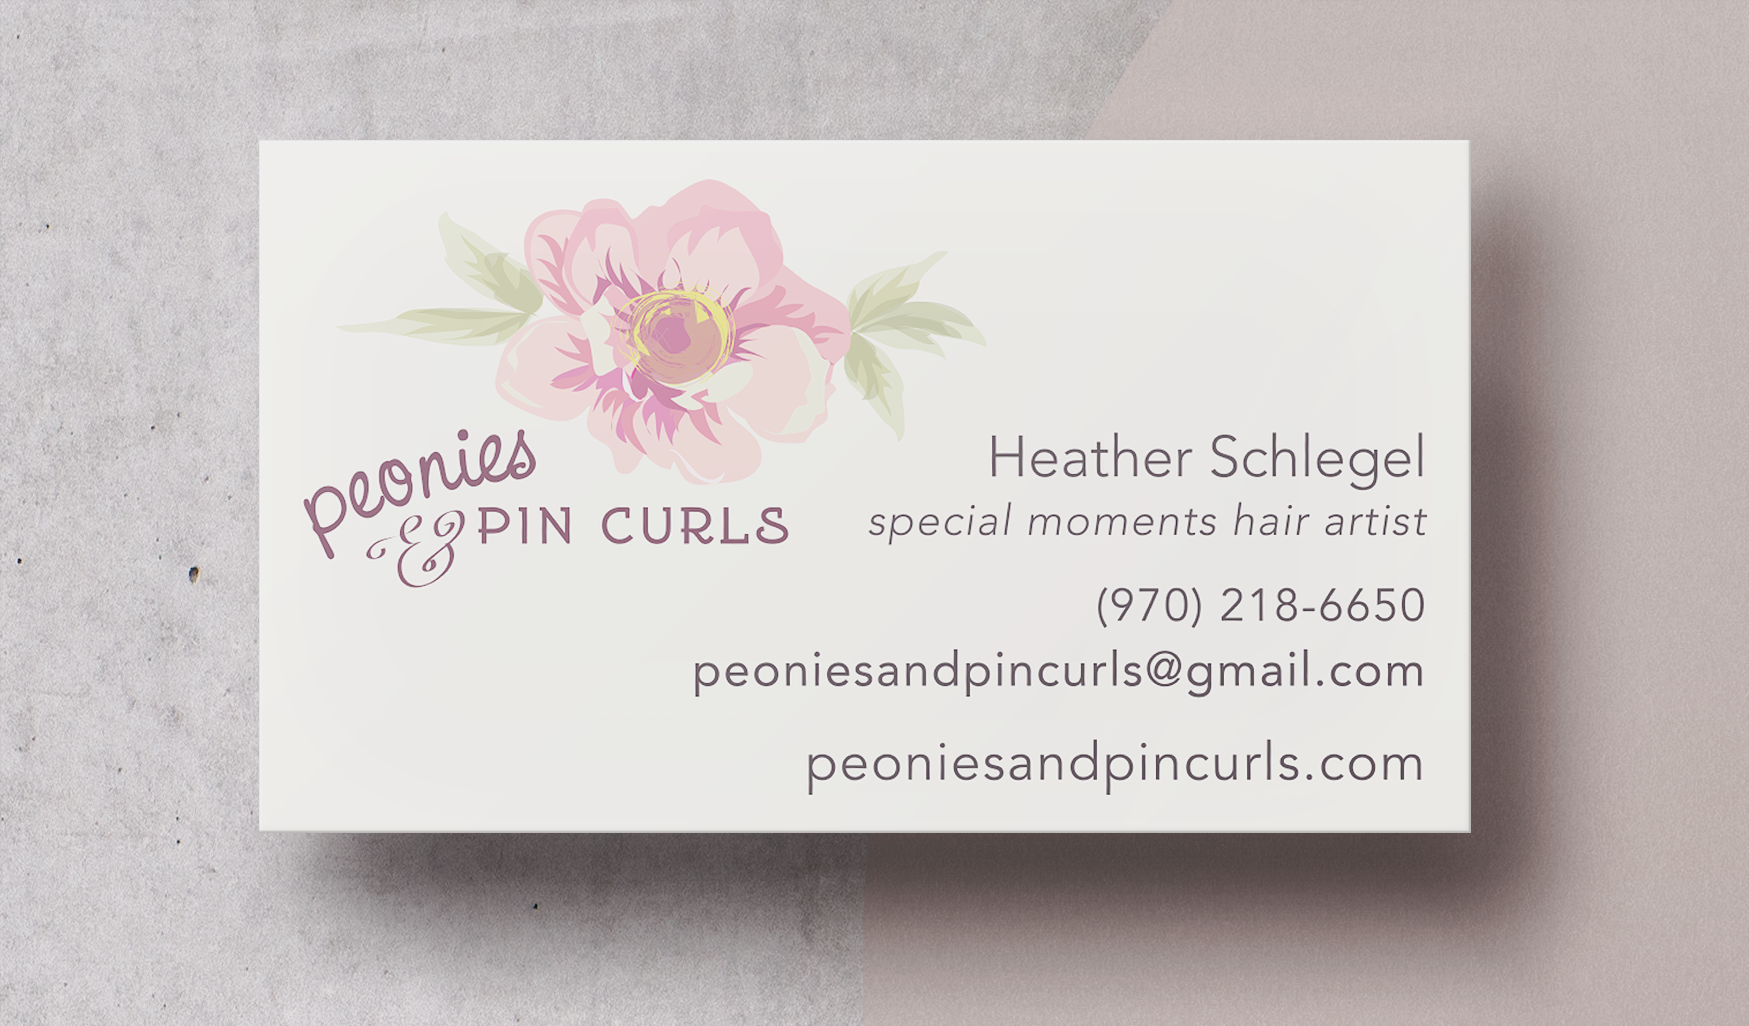 Peonies & Pin Curls Business Card Design